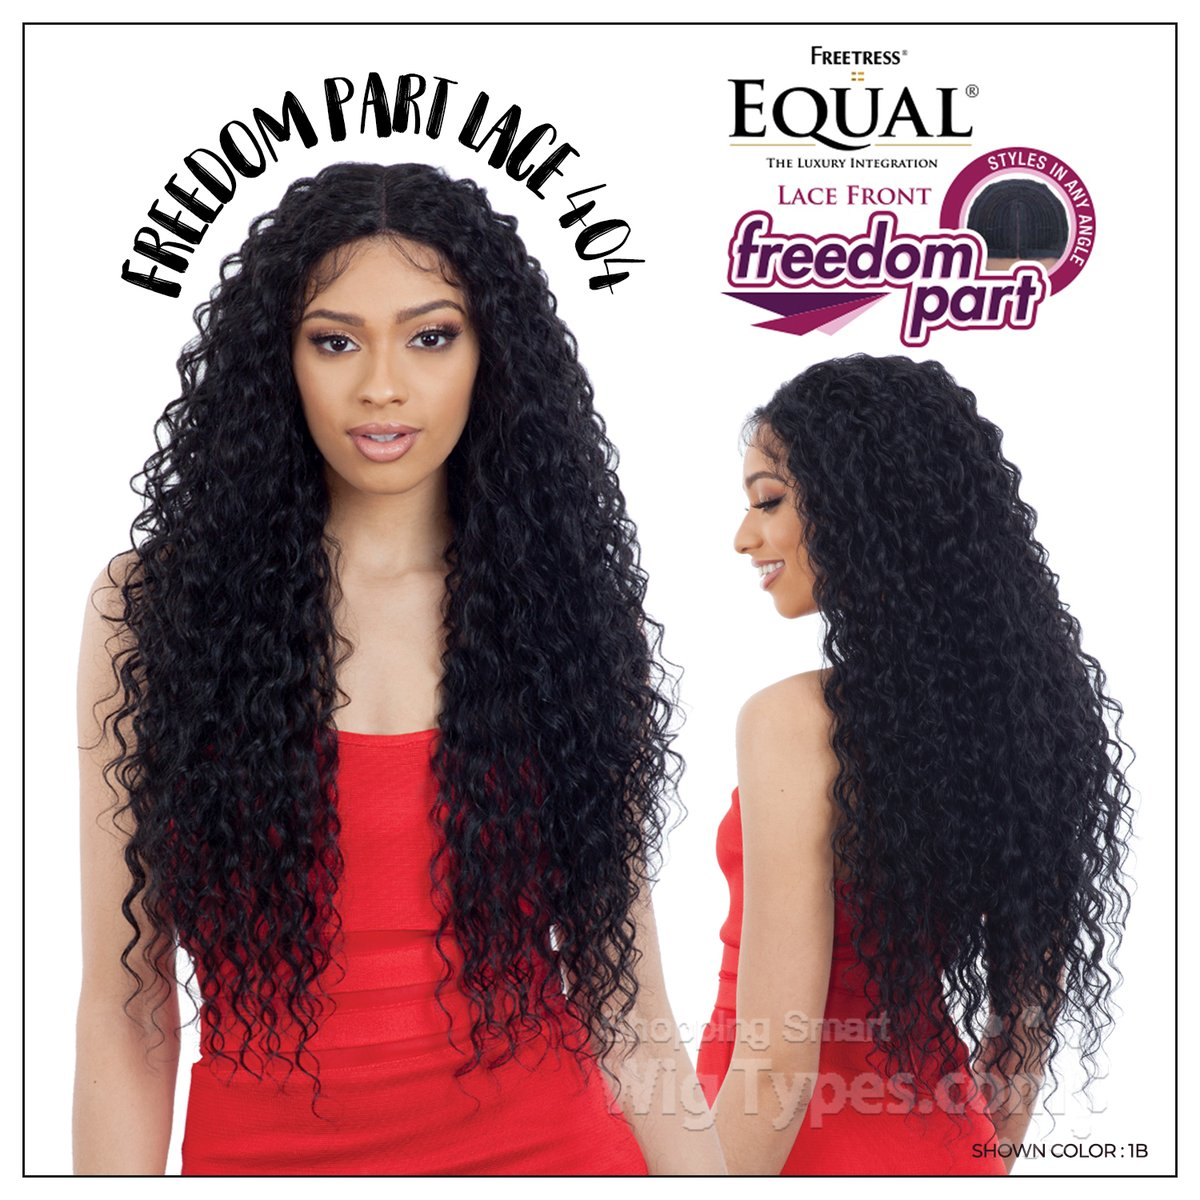 Freetress Equal Synthetic Freedom Part Lace Front Wig - FREEDOM PART LACE 404 (https://soo.nr/PfeY )  . . . . #wigtypes #wigtypesdotcom #trendyhair #protectivestyles #blackgirlhair #instahair ##lacefrontwig #syntheticwigs #freetressequal #freedompartwig #freedompartlace404pic.twitter.com/3dmb0MHSw7